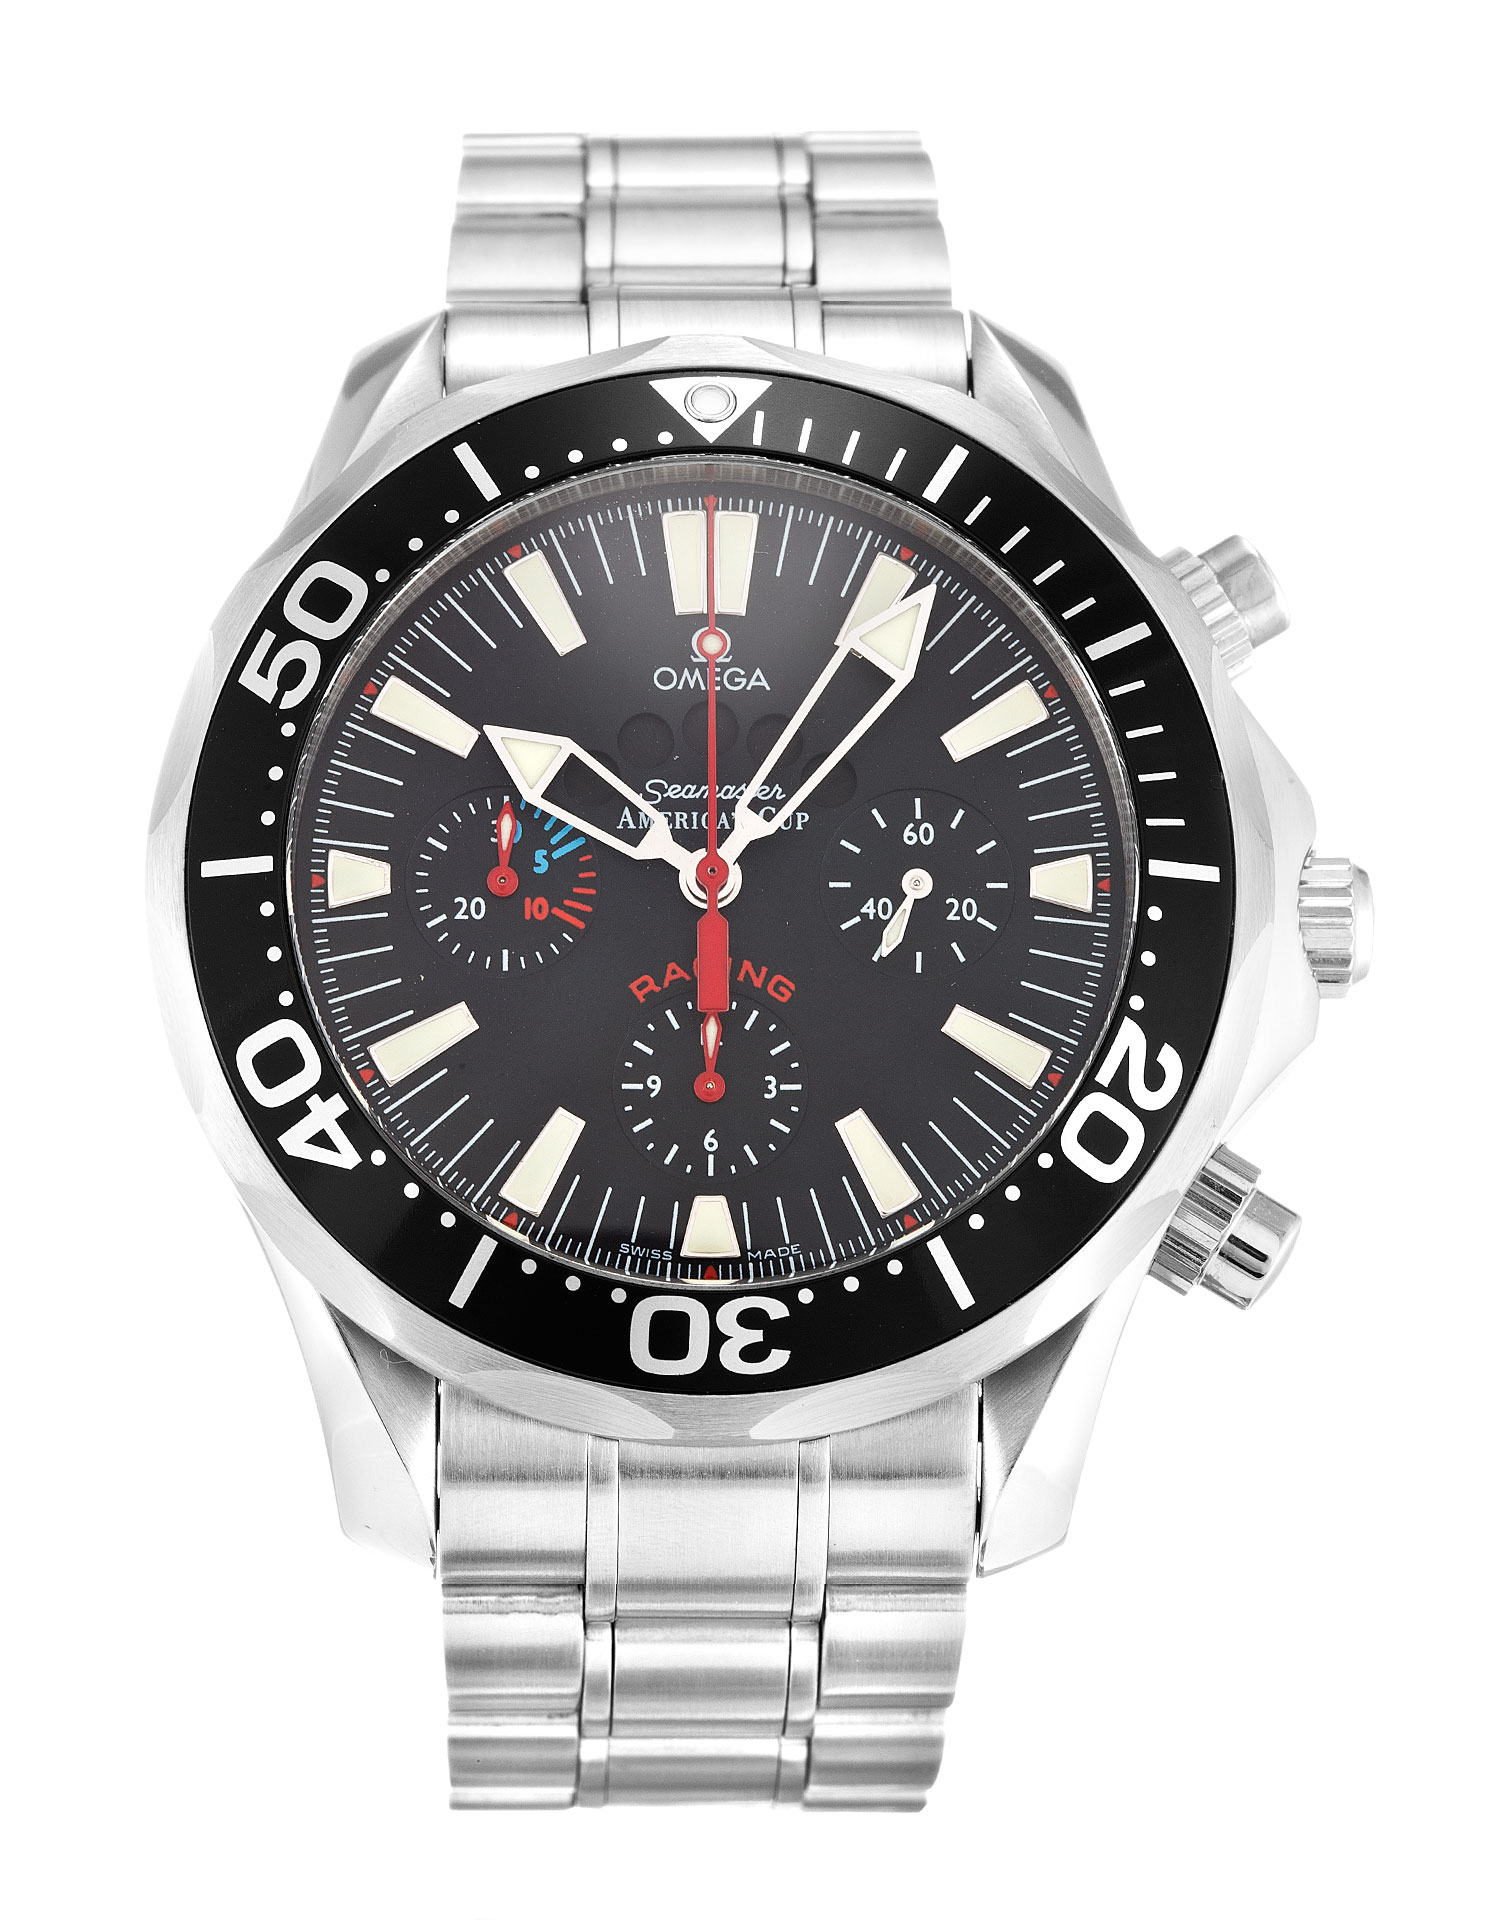 Omega Seamaster 300m 2569.50.00 Mens 44 Mm Steel Case Automatic Movement – iapac.to